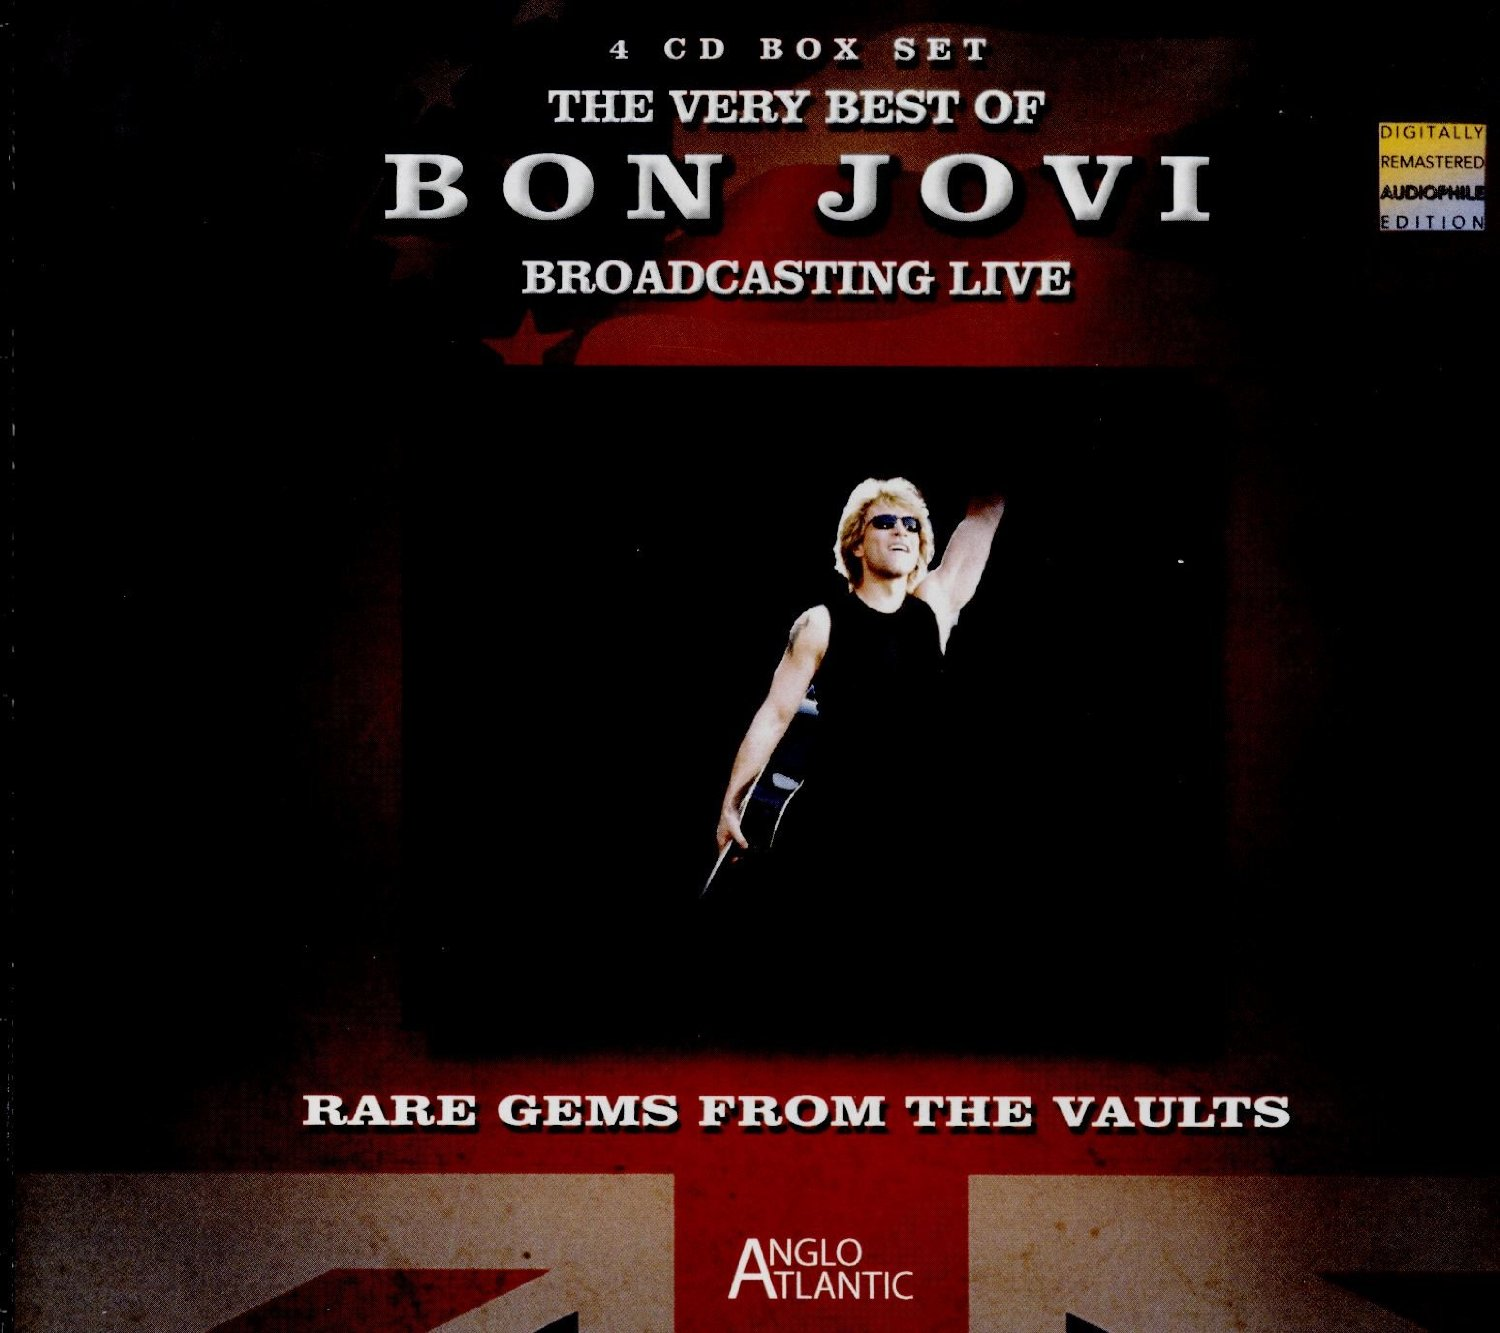 Bon Jovi The Very Best (4 CD Box Set Bon Jovi)